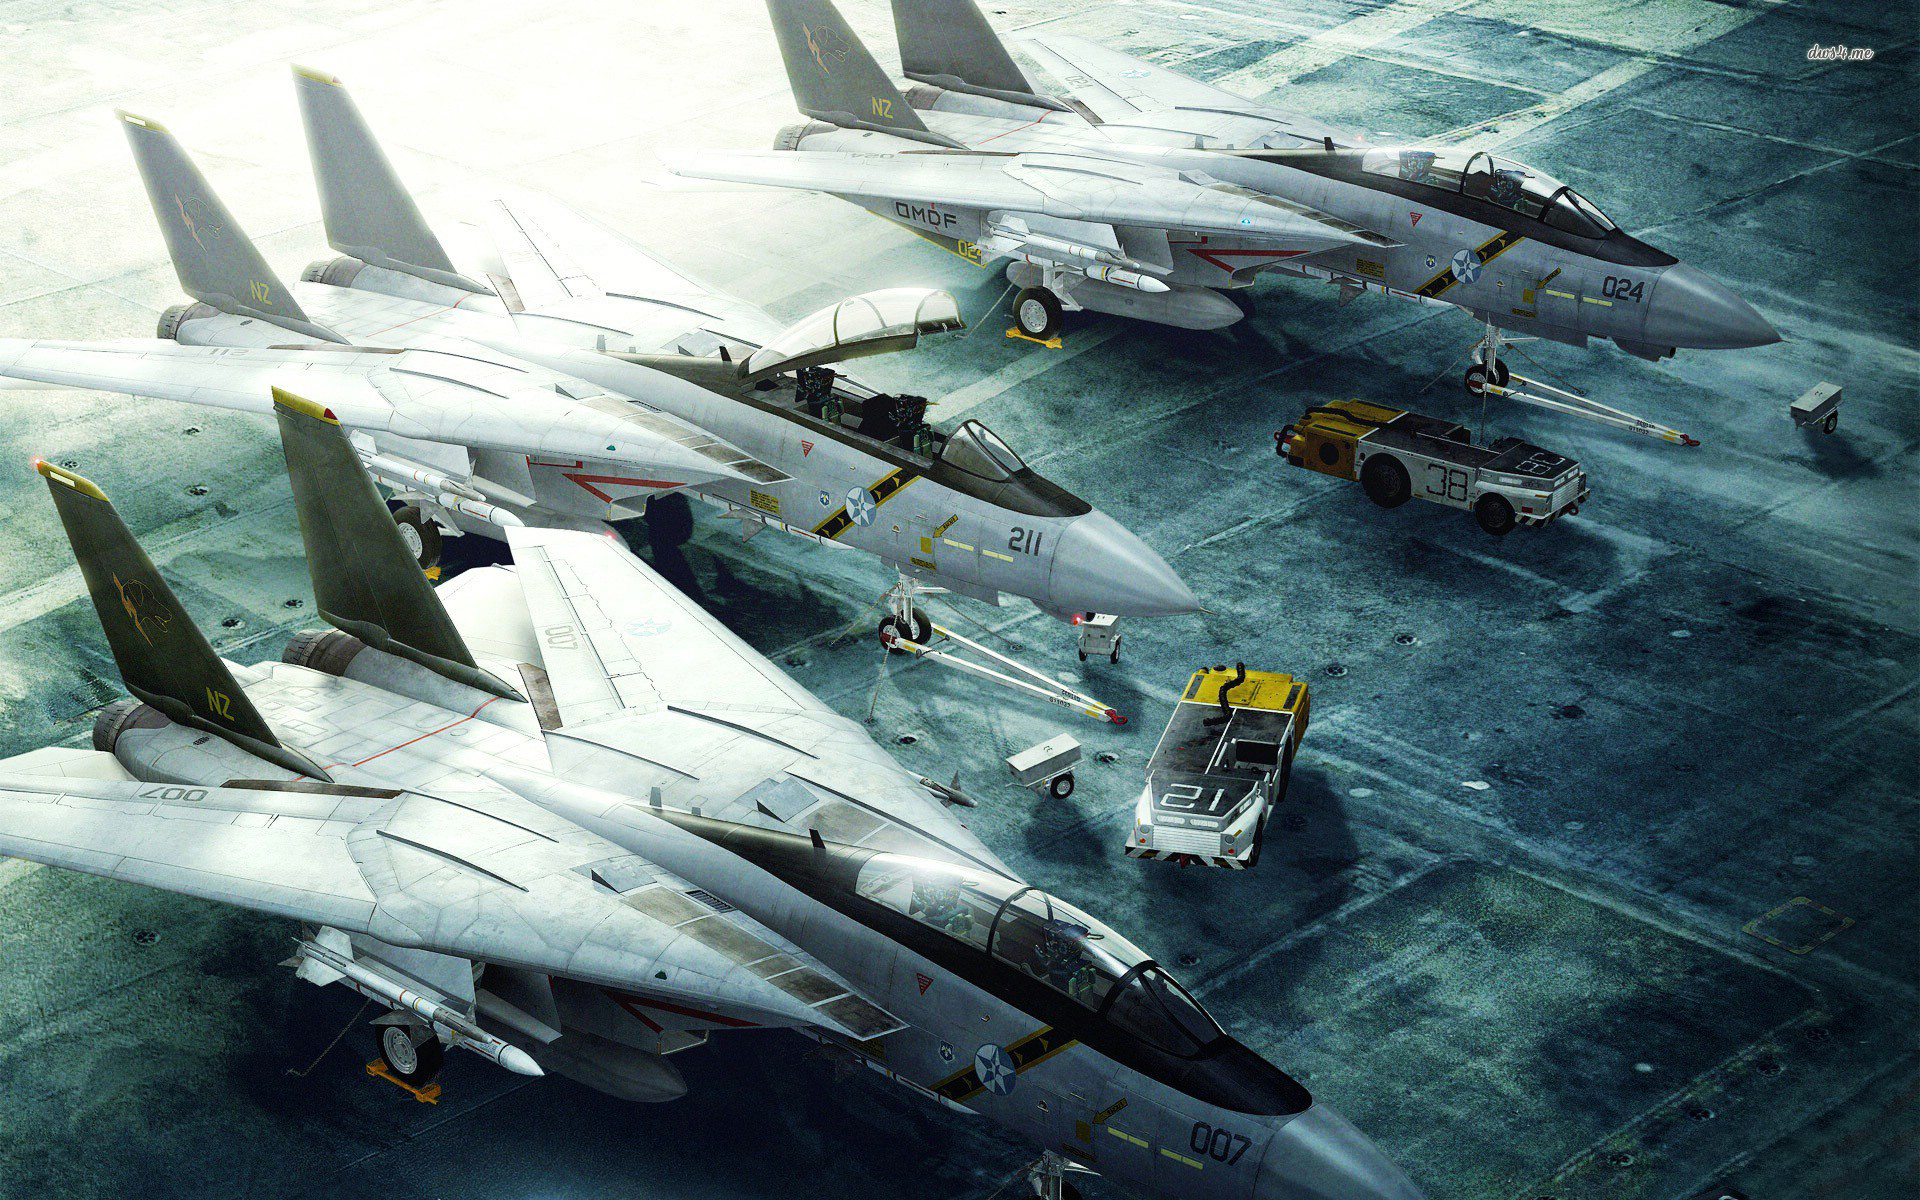 Jet Fighter Military Aircraft HD Wallpapers in HD | HD Wallpapers |  Pinterest | Hd wallpaper